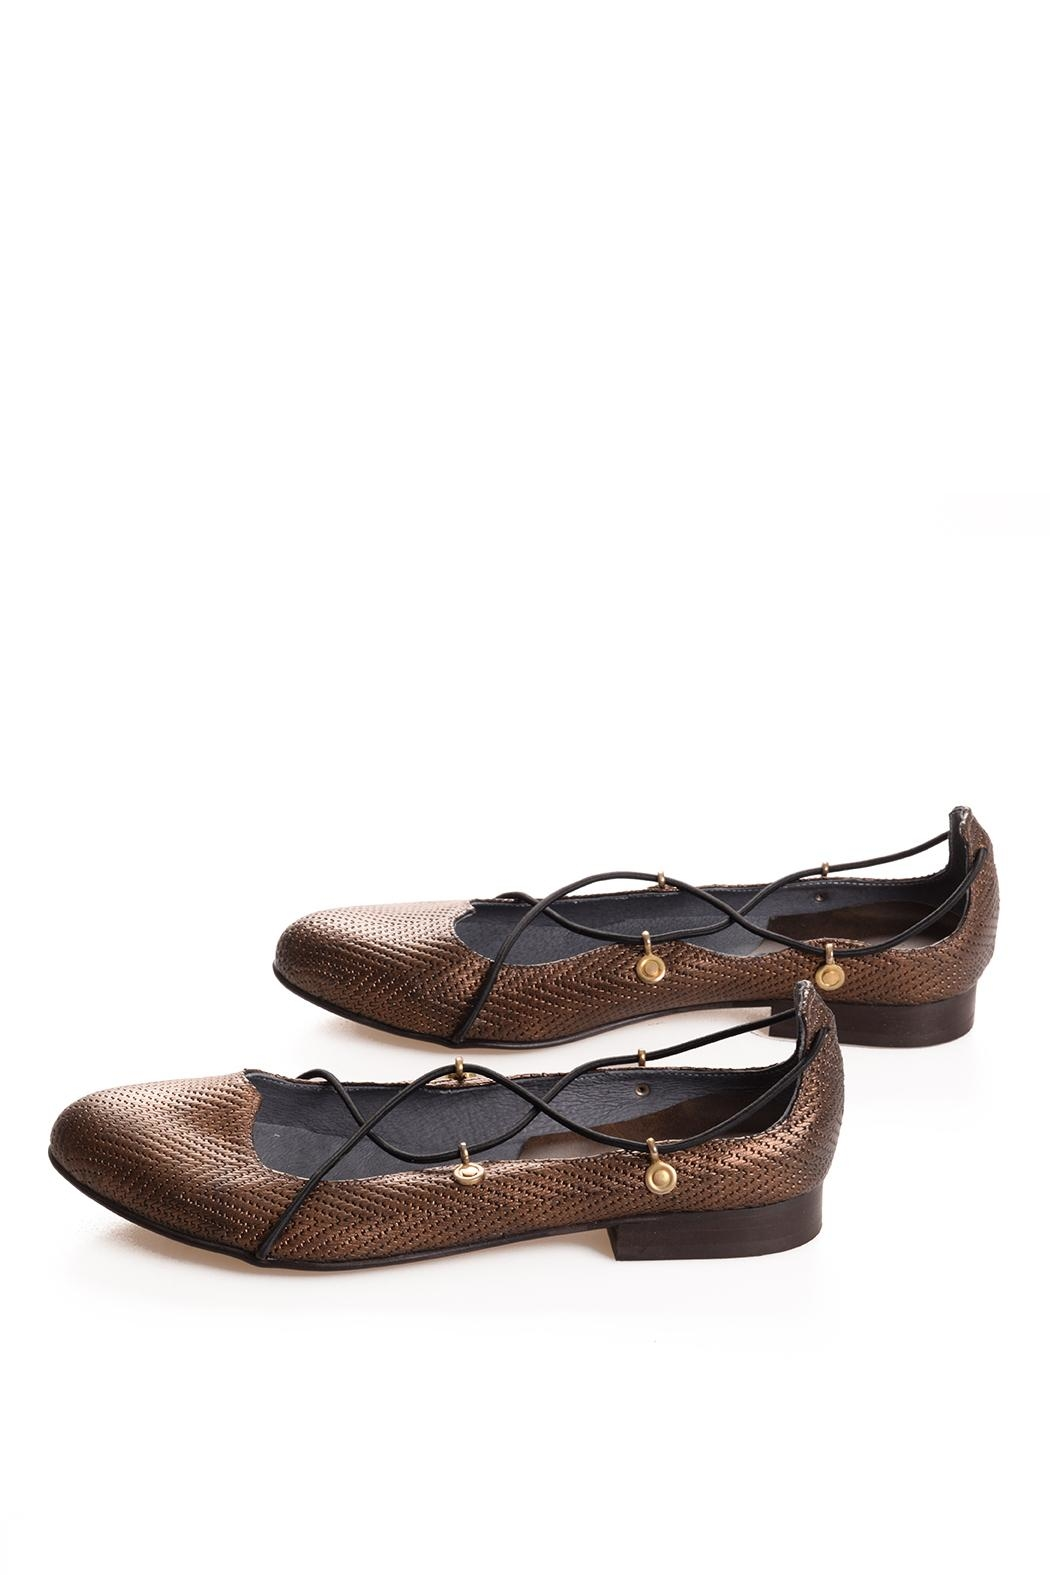 Bottega Bash Gold Leather Loafers - Main Image